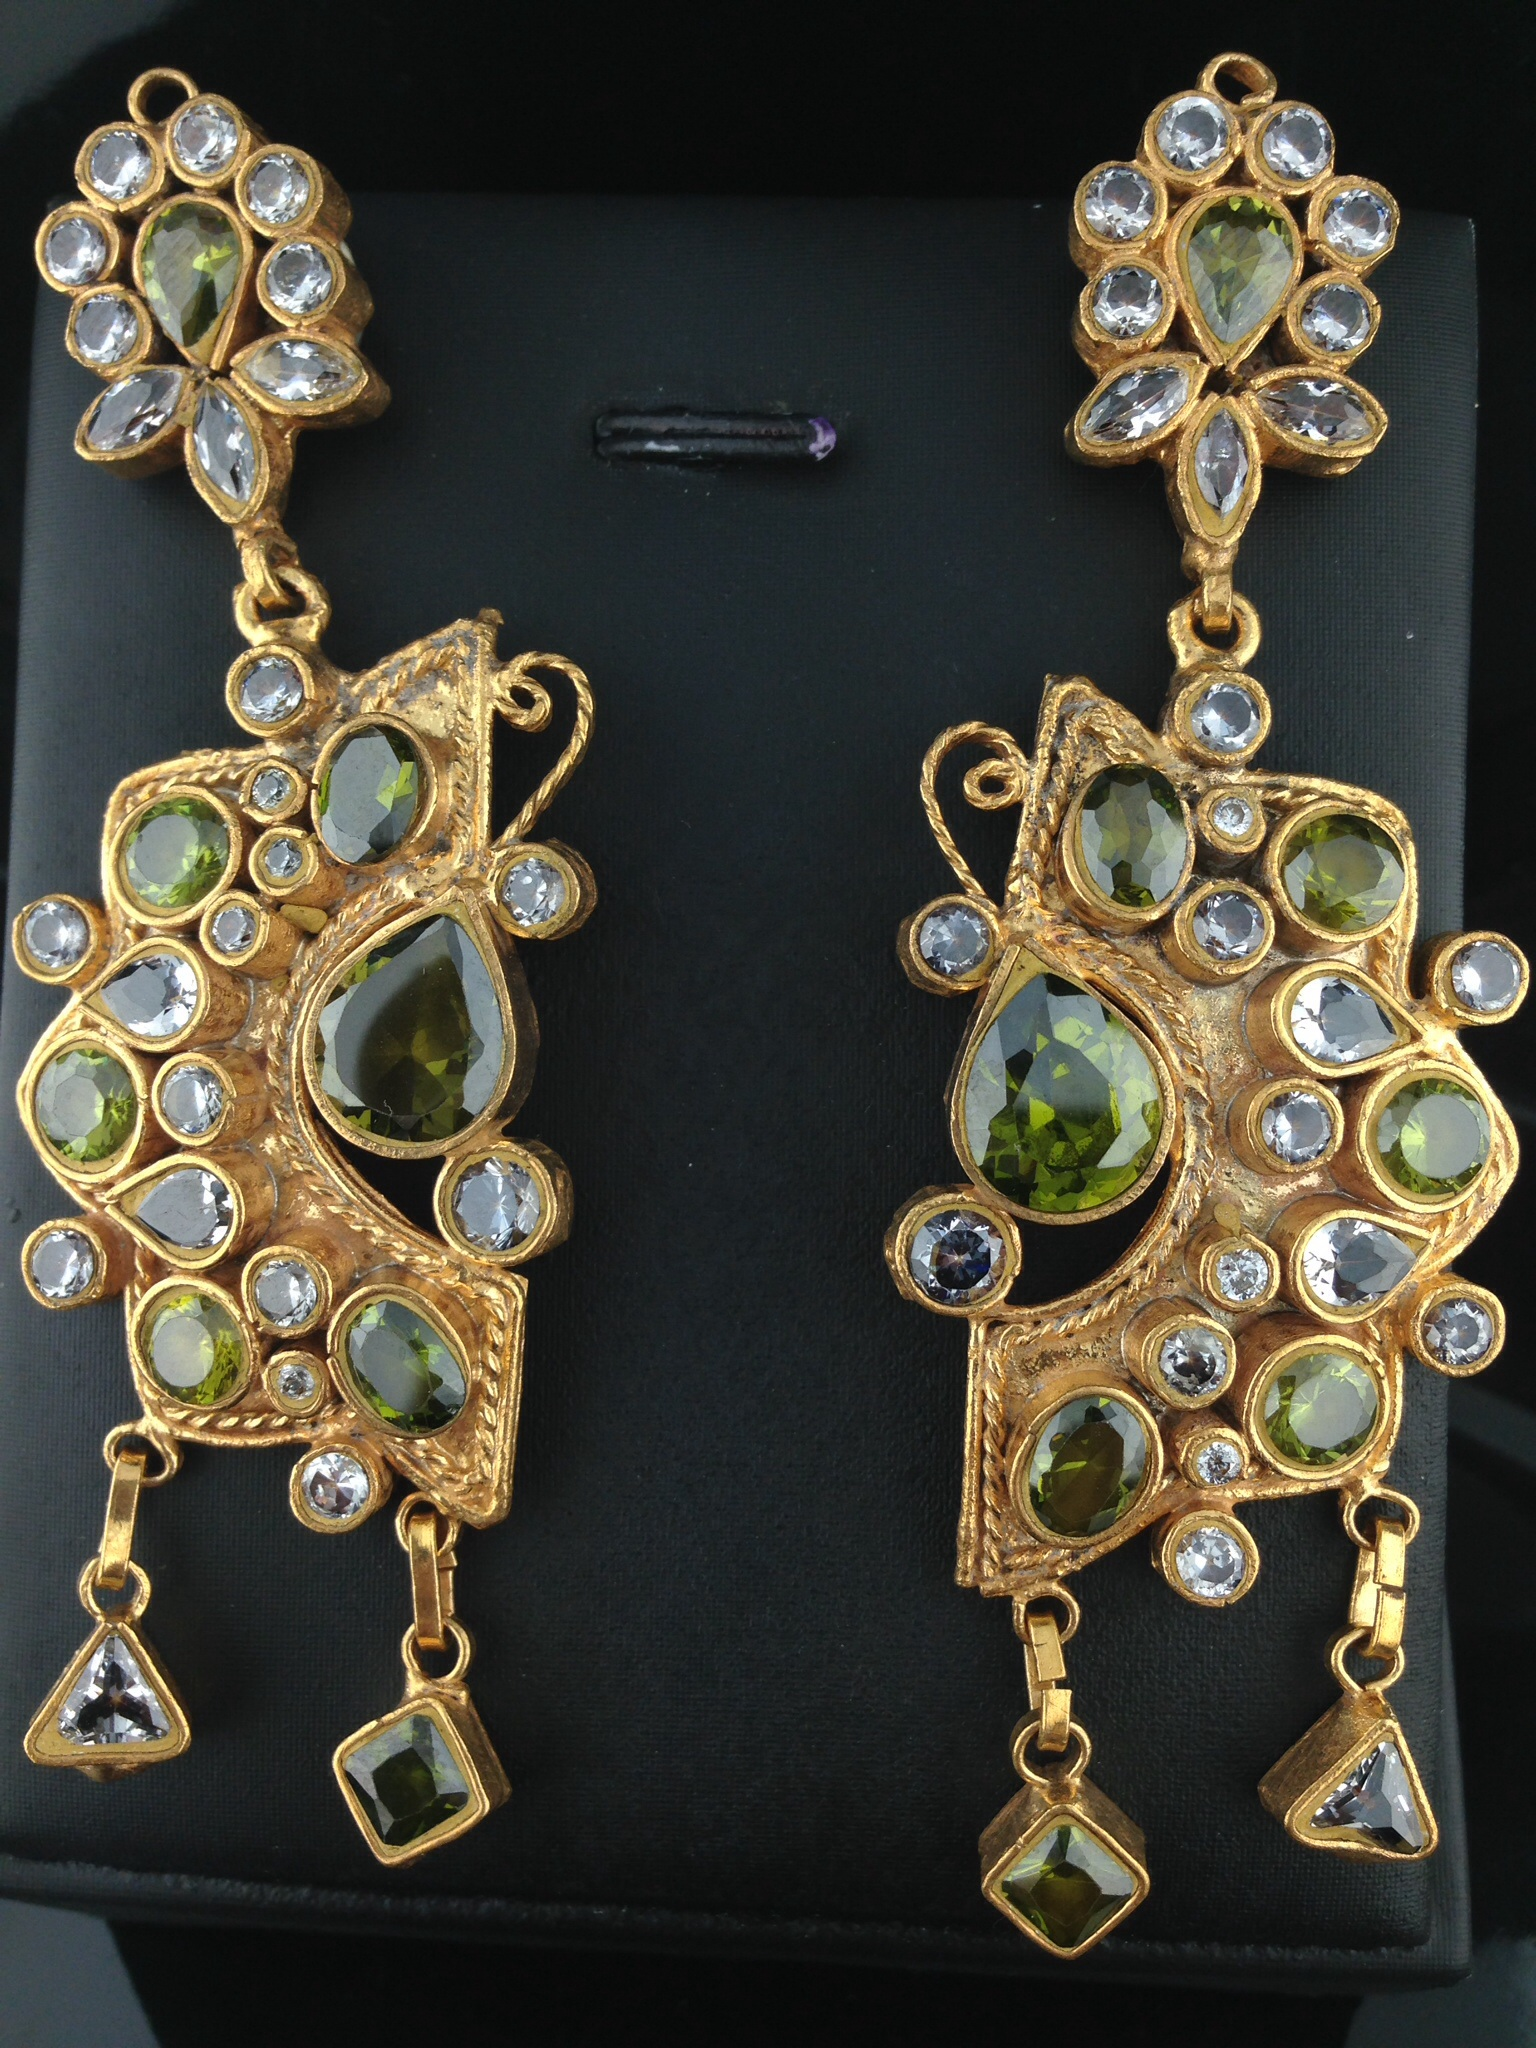 Kundan Earrings With Emeralds And Crystals.